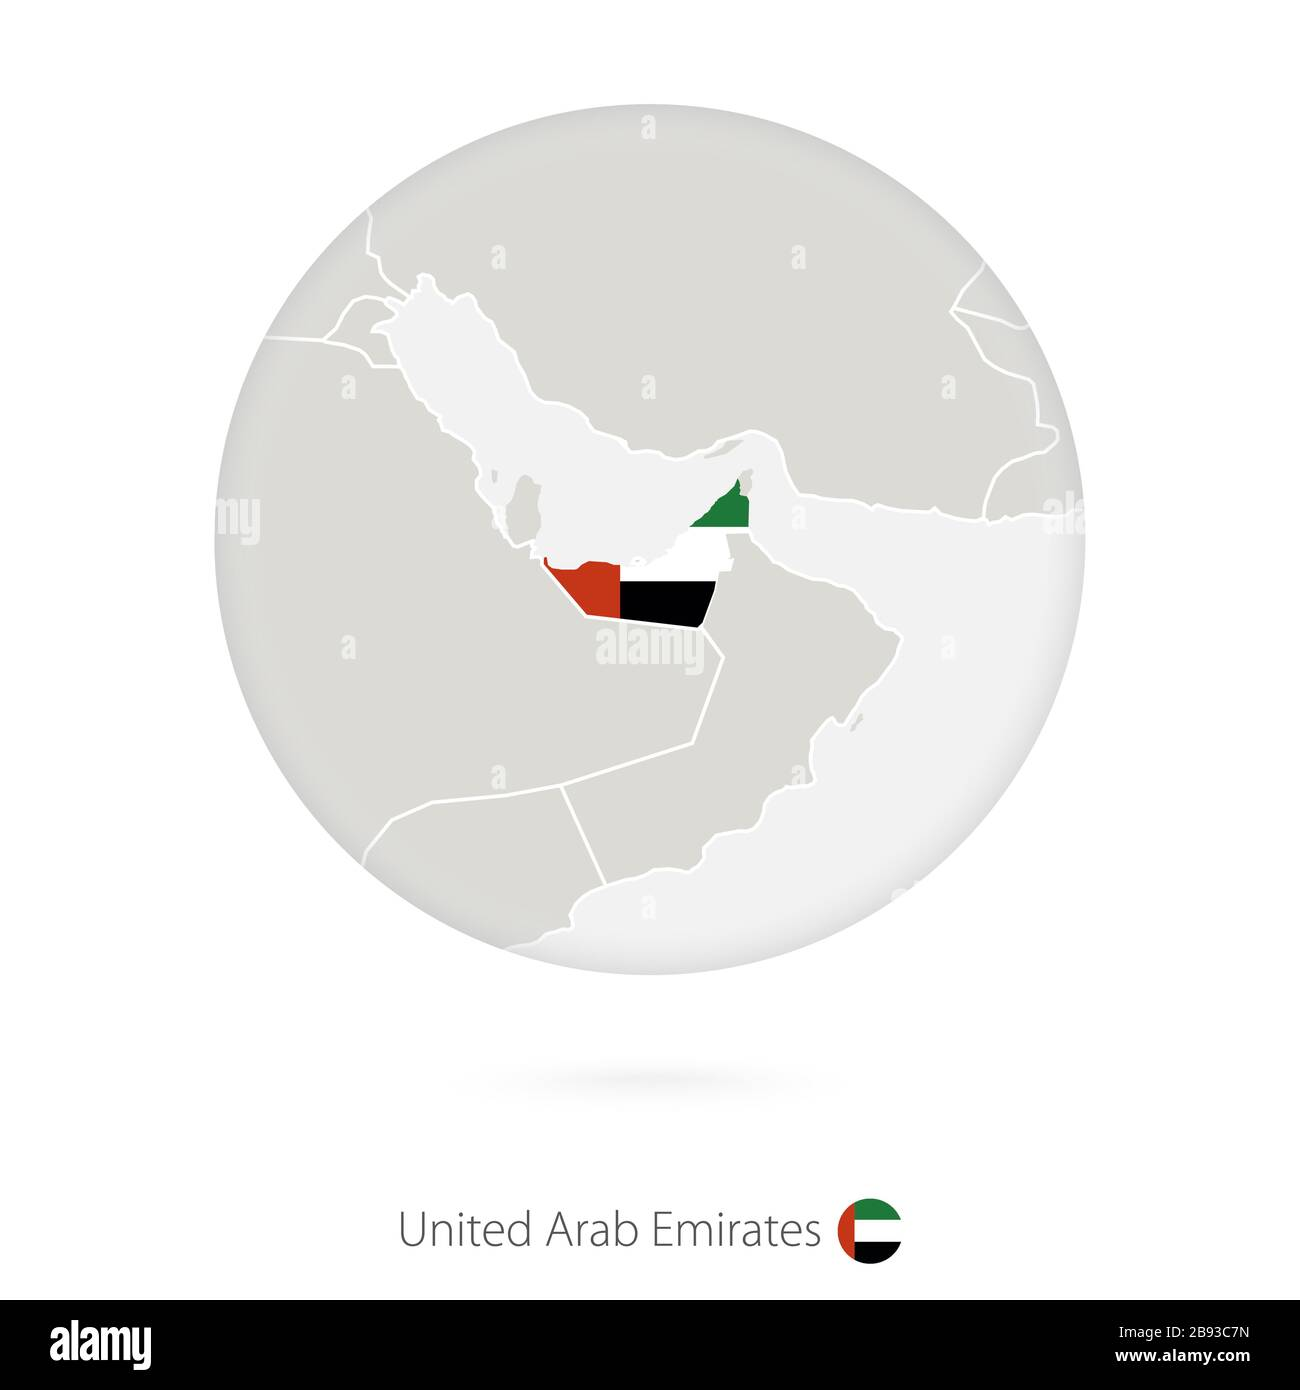 Uae Map High Resolution Stock Photography And Images Alamy